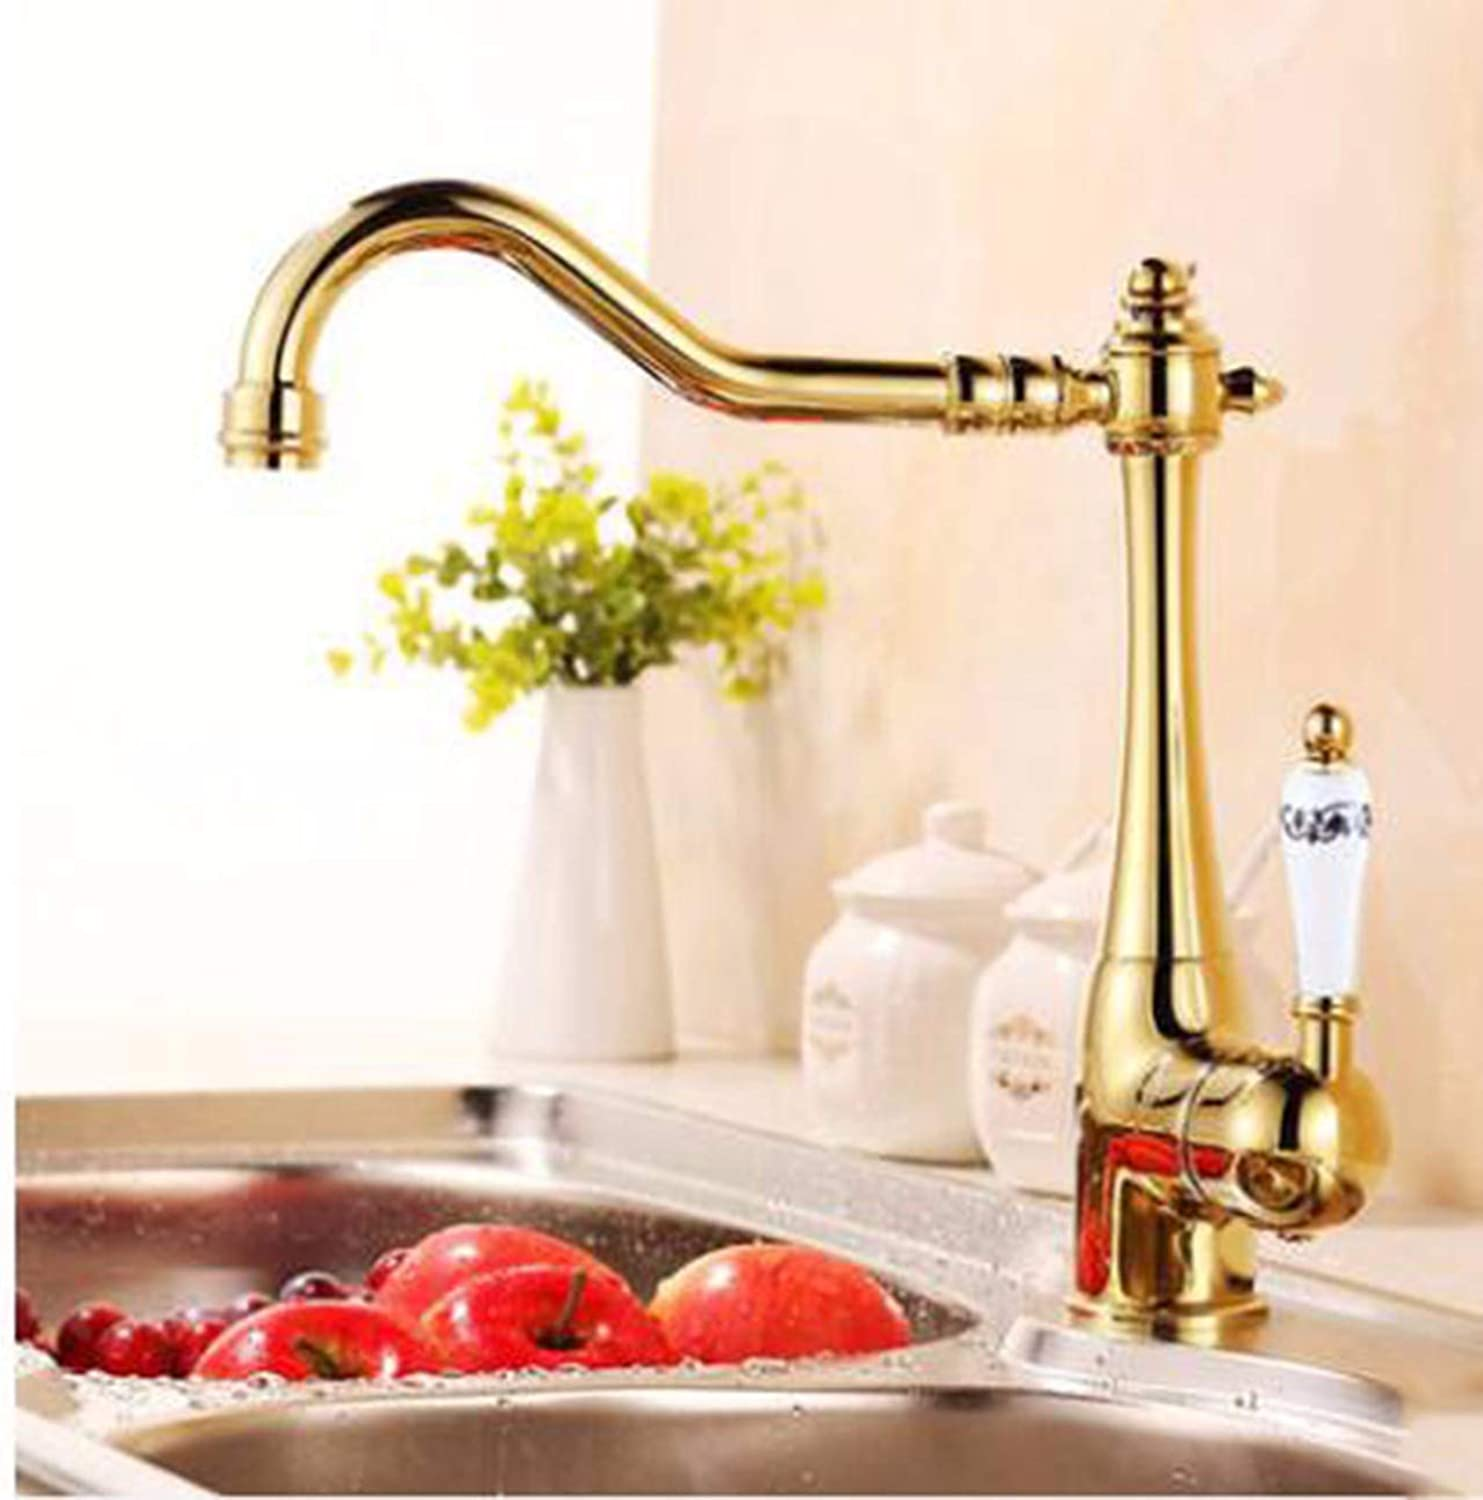 XPYFaucet Faucet Tap Taps Copper kitchen antique sink hot and cold mop pool mop pool, B